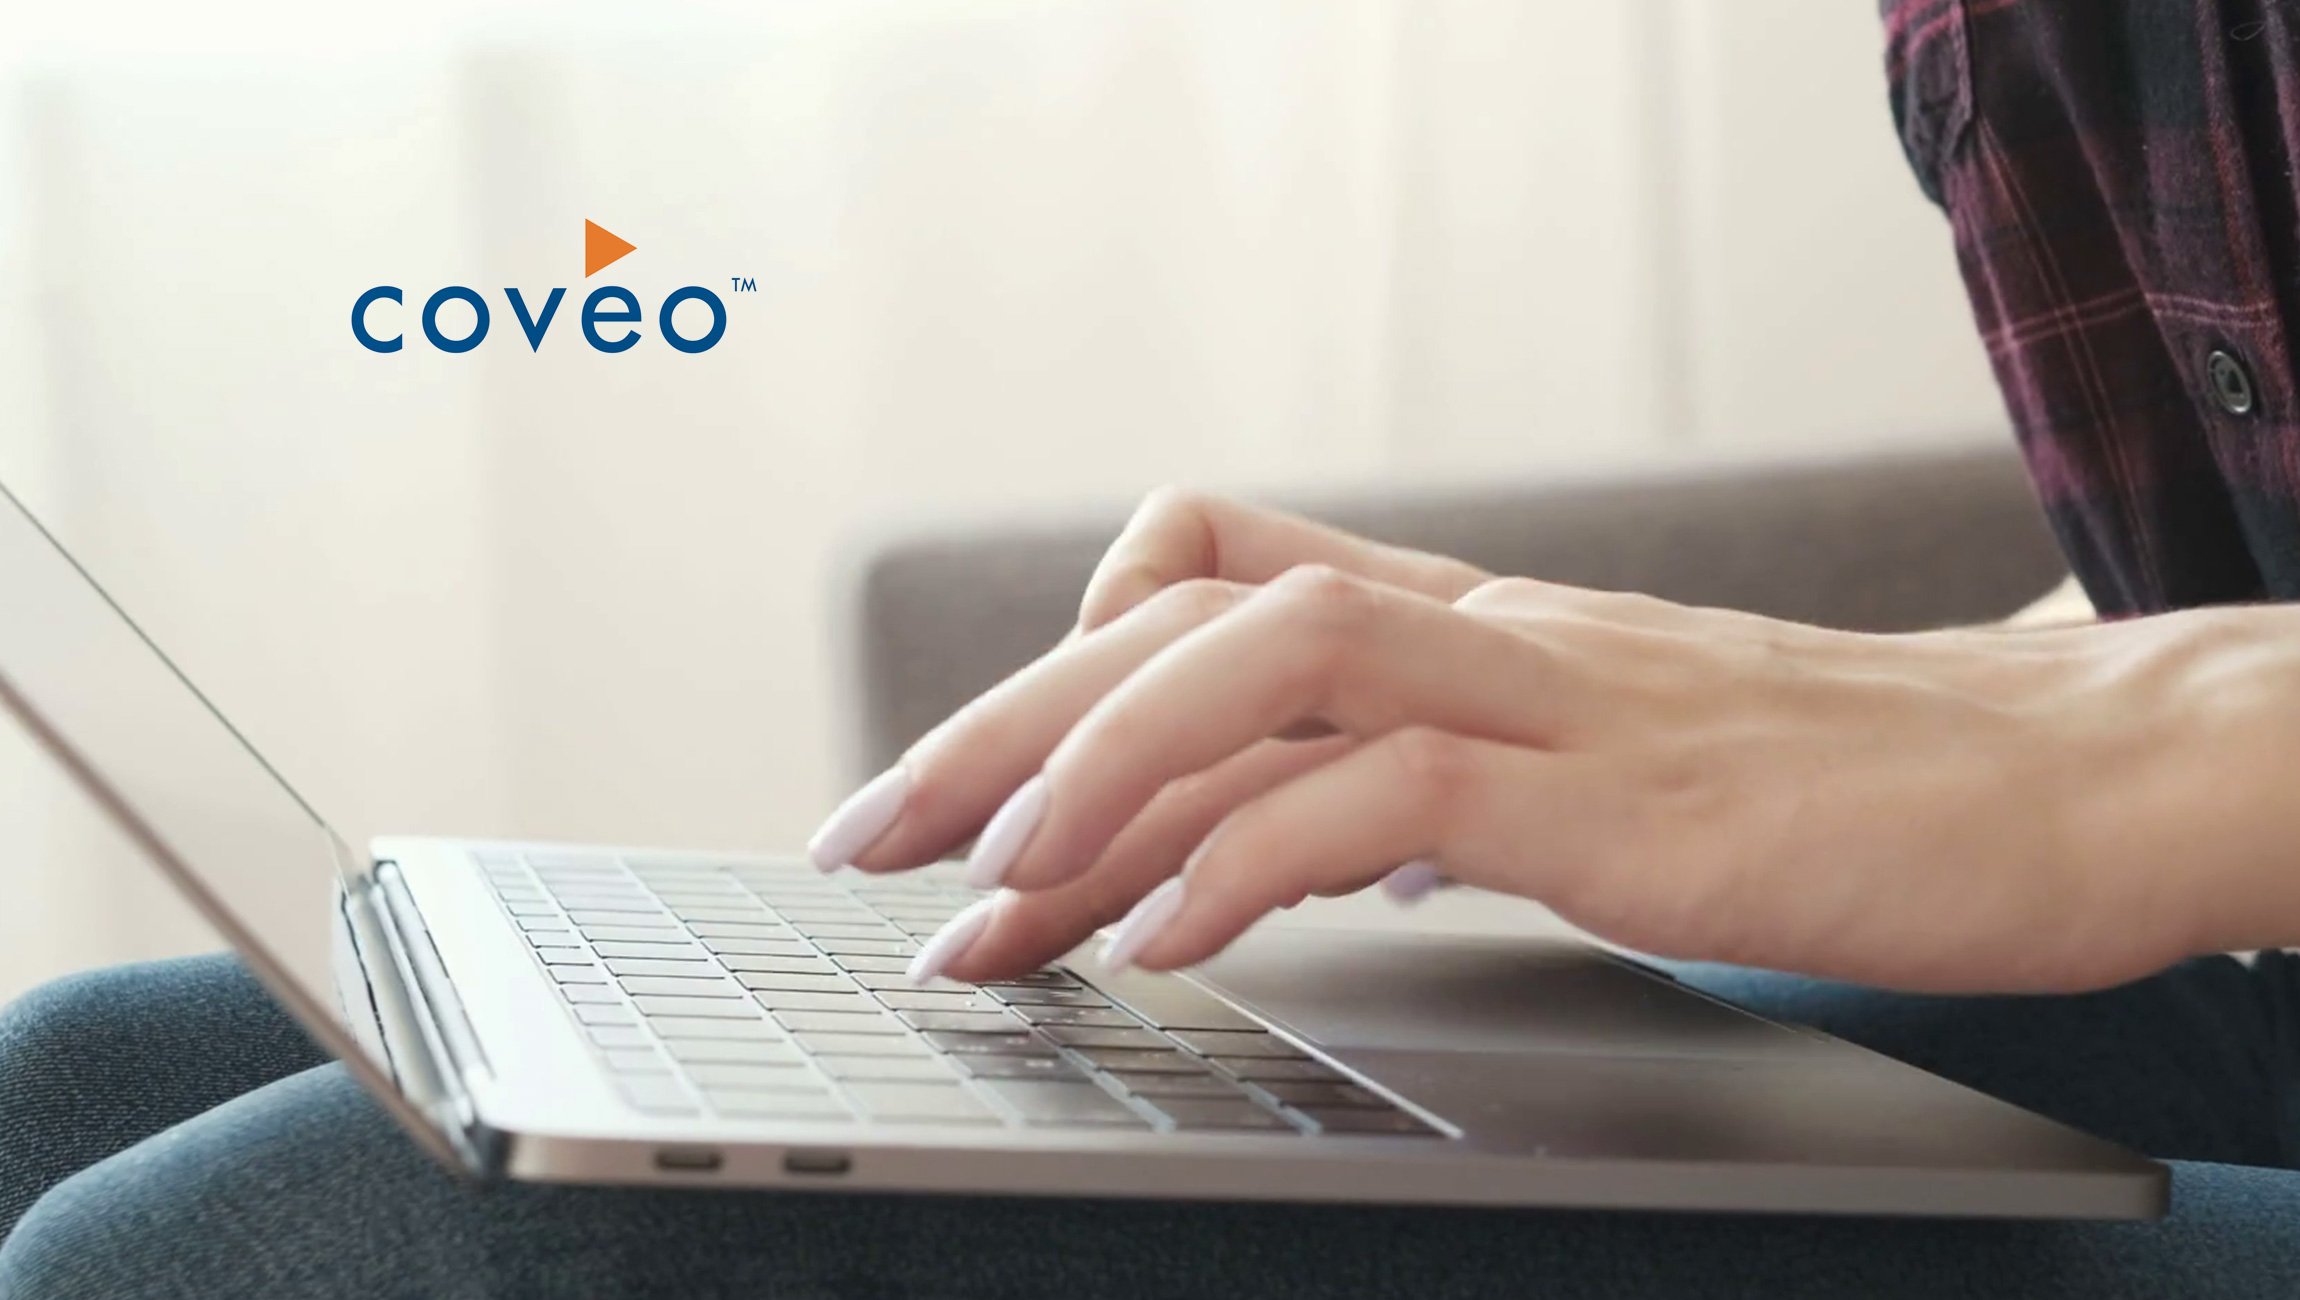 Coveo Announces the Launch of its AI-Powered Community Coveo Connect